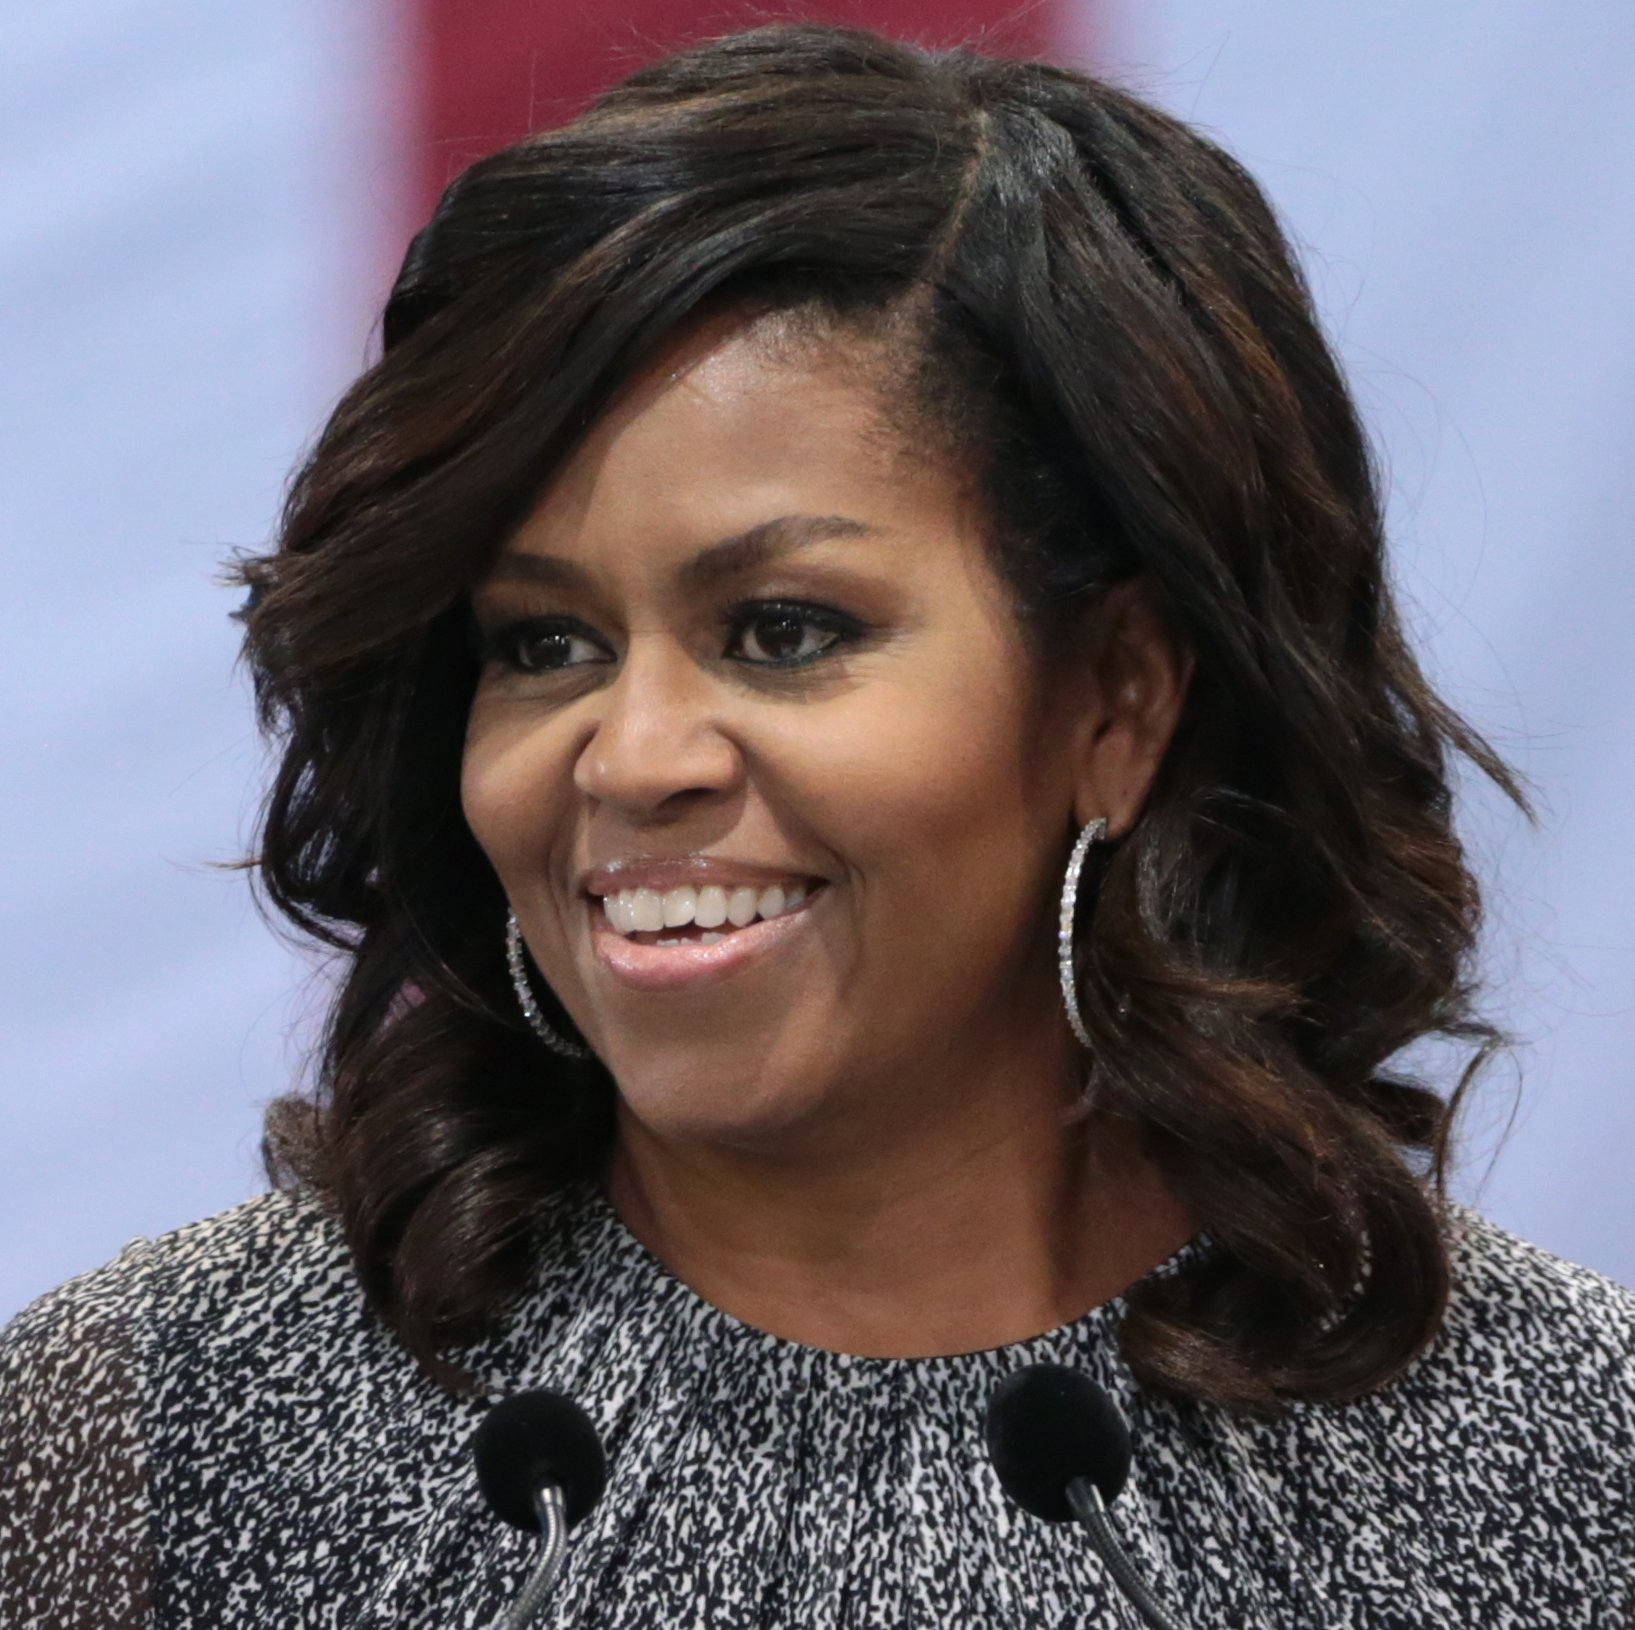 https://commons.wikimedia.org/wiki/File:Michelle_Obama_(30343251332)_(cropped).jpg